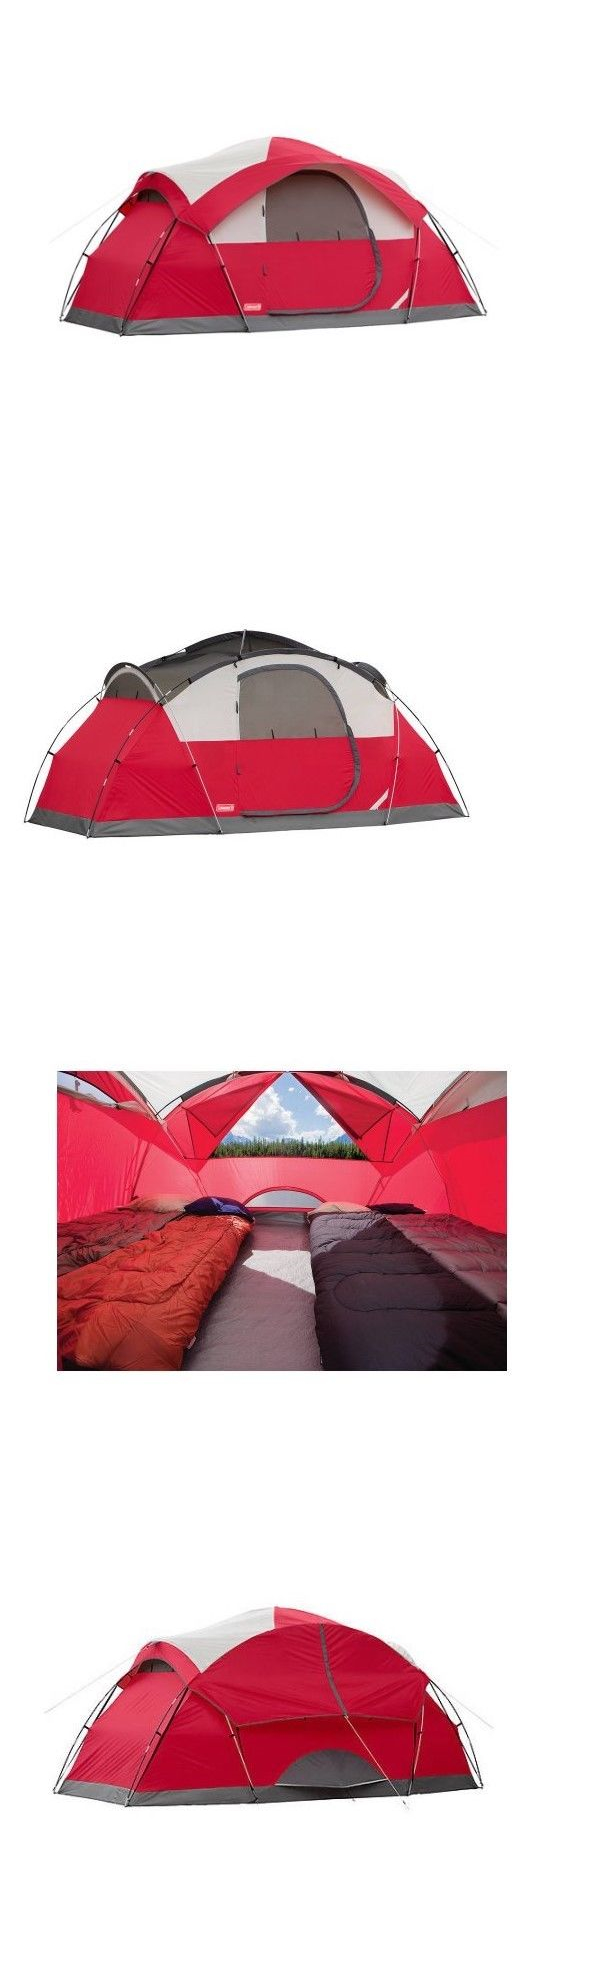 Tents 179010 Coleman Cimmaron 8Person Modified Dome Tent C&ing Outdoor Sport Hiking Shelter -u003e  sc 1 st  Pinterest & Tents 179010: Coleman Cimmaron 8Person Modified Dome Tent Camping ...